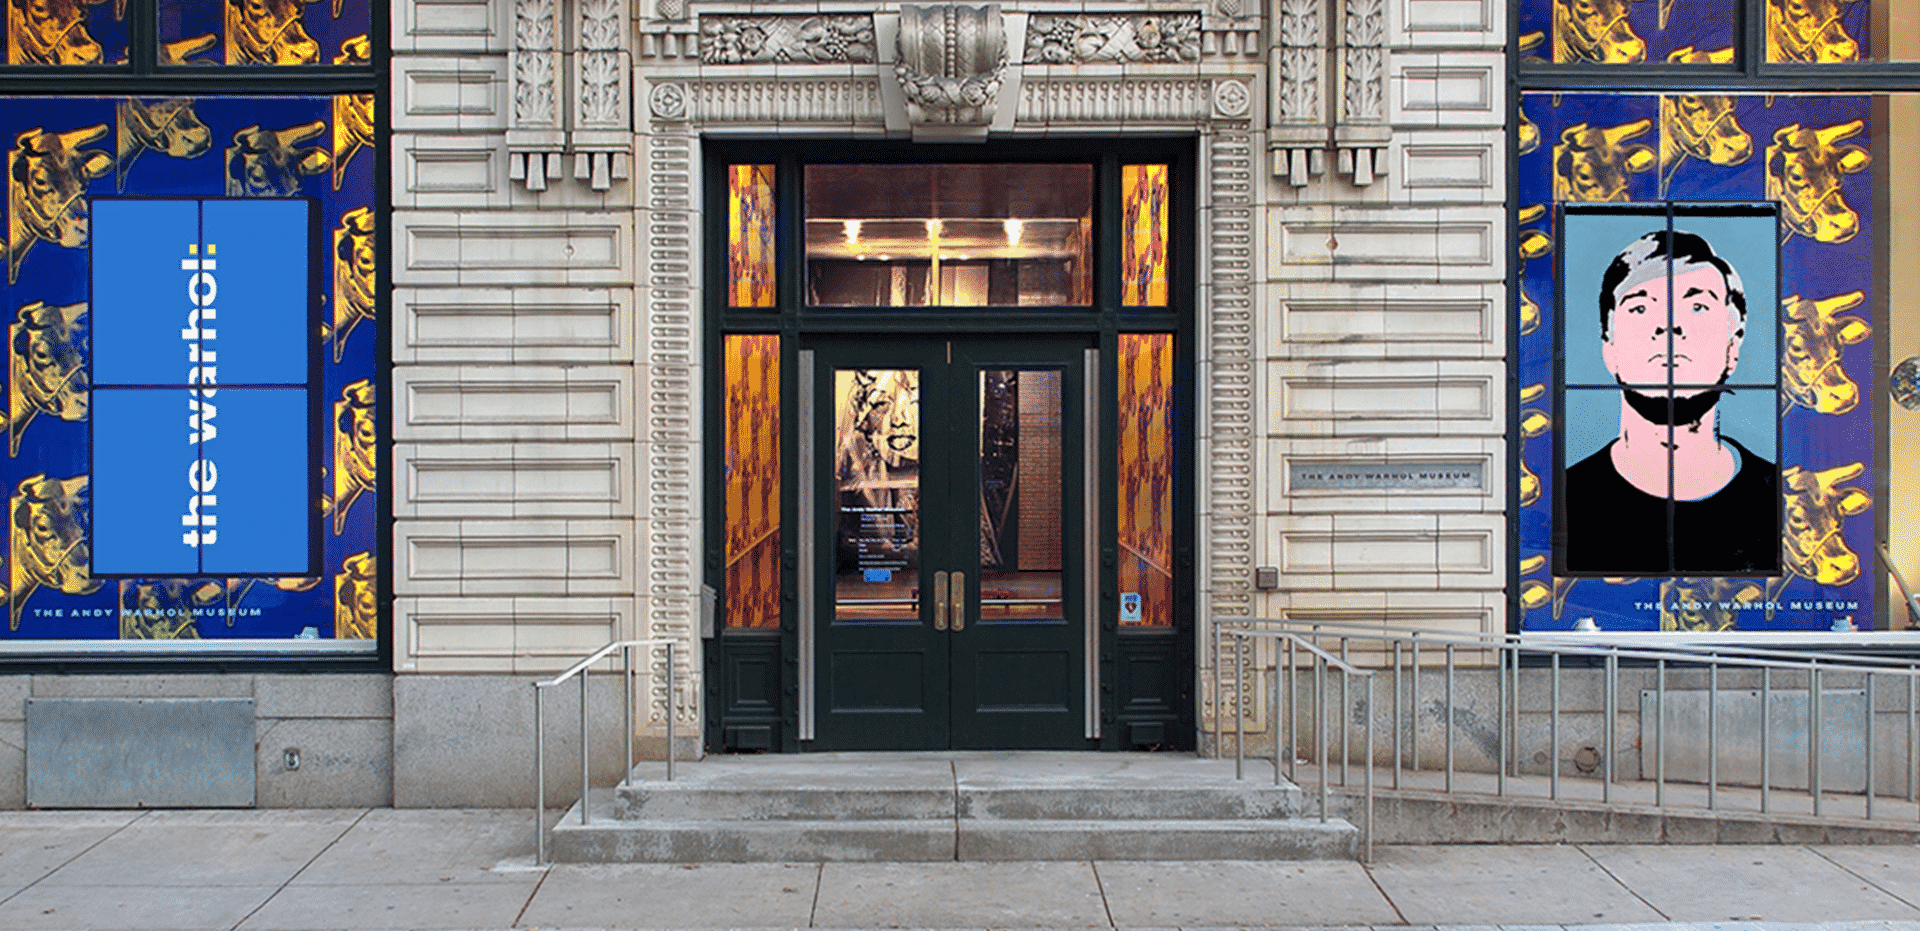 The Andy Warhol Museum in Pittsburg